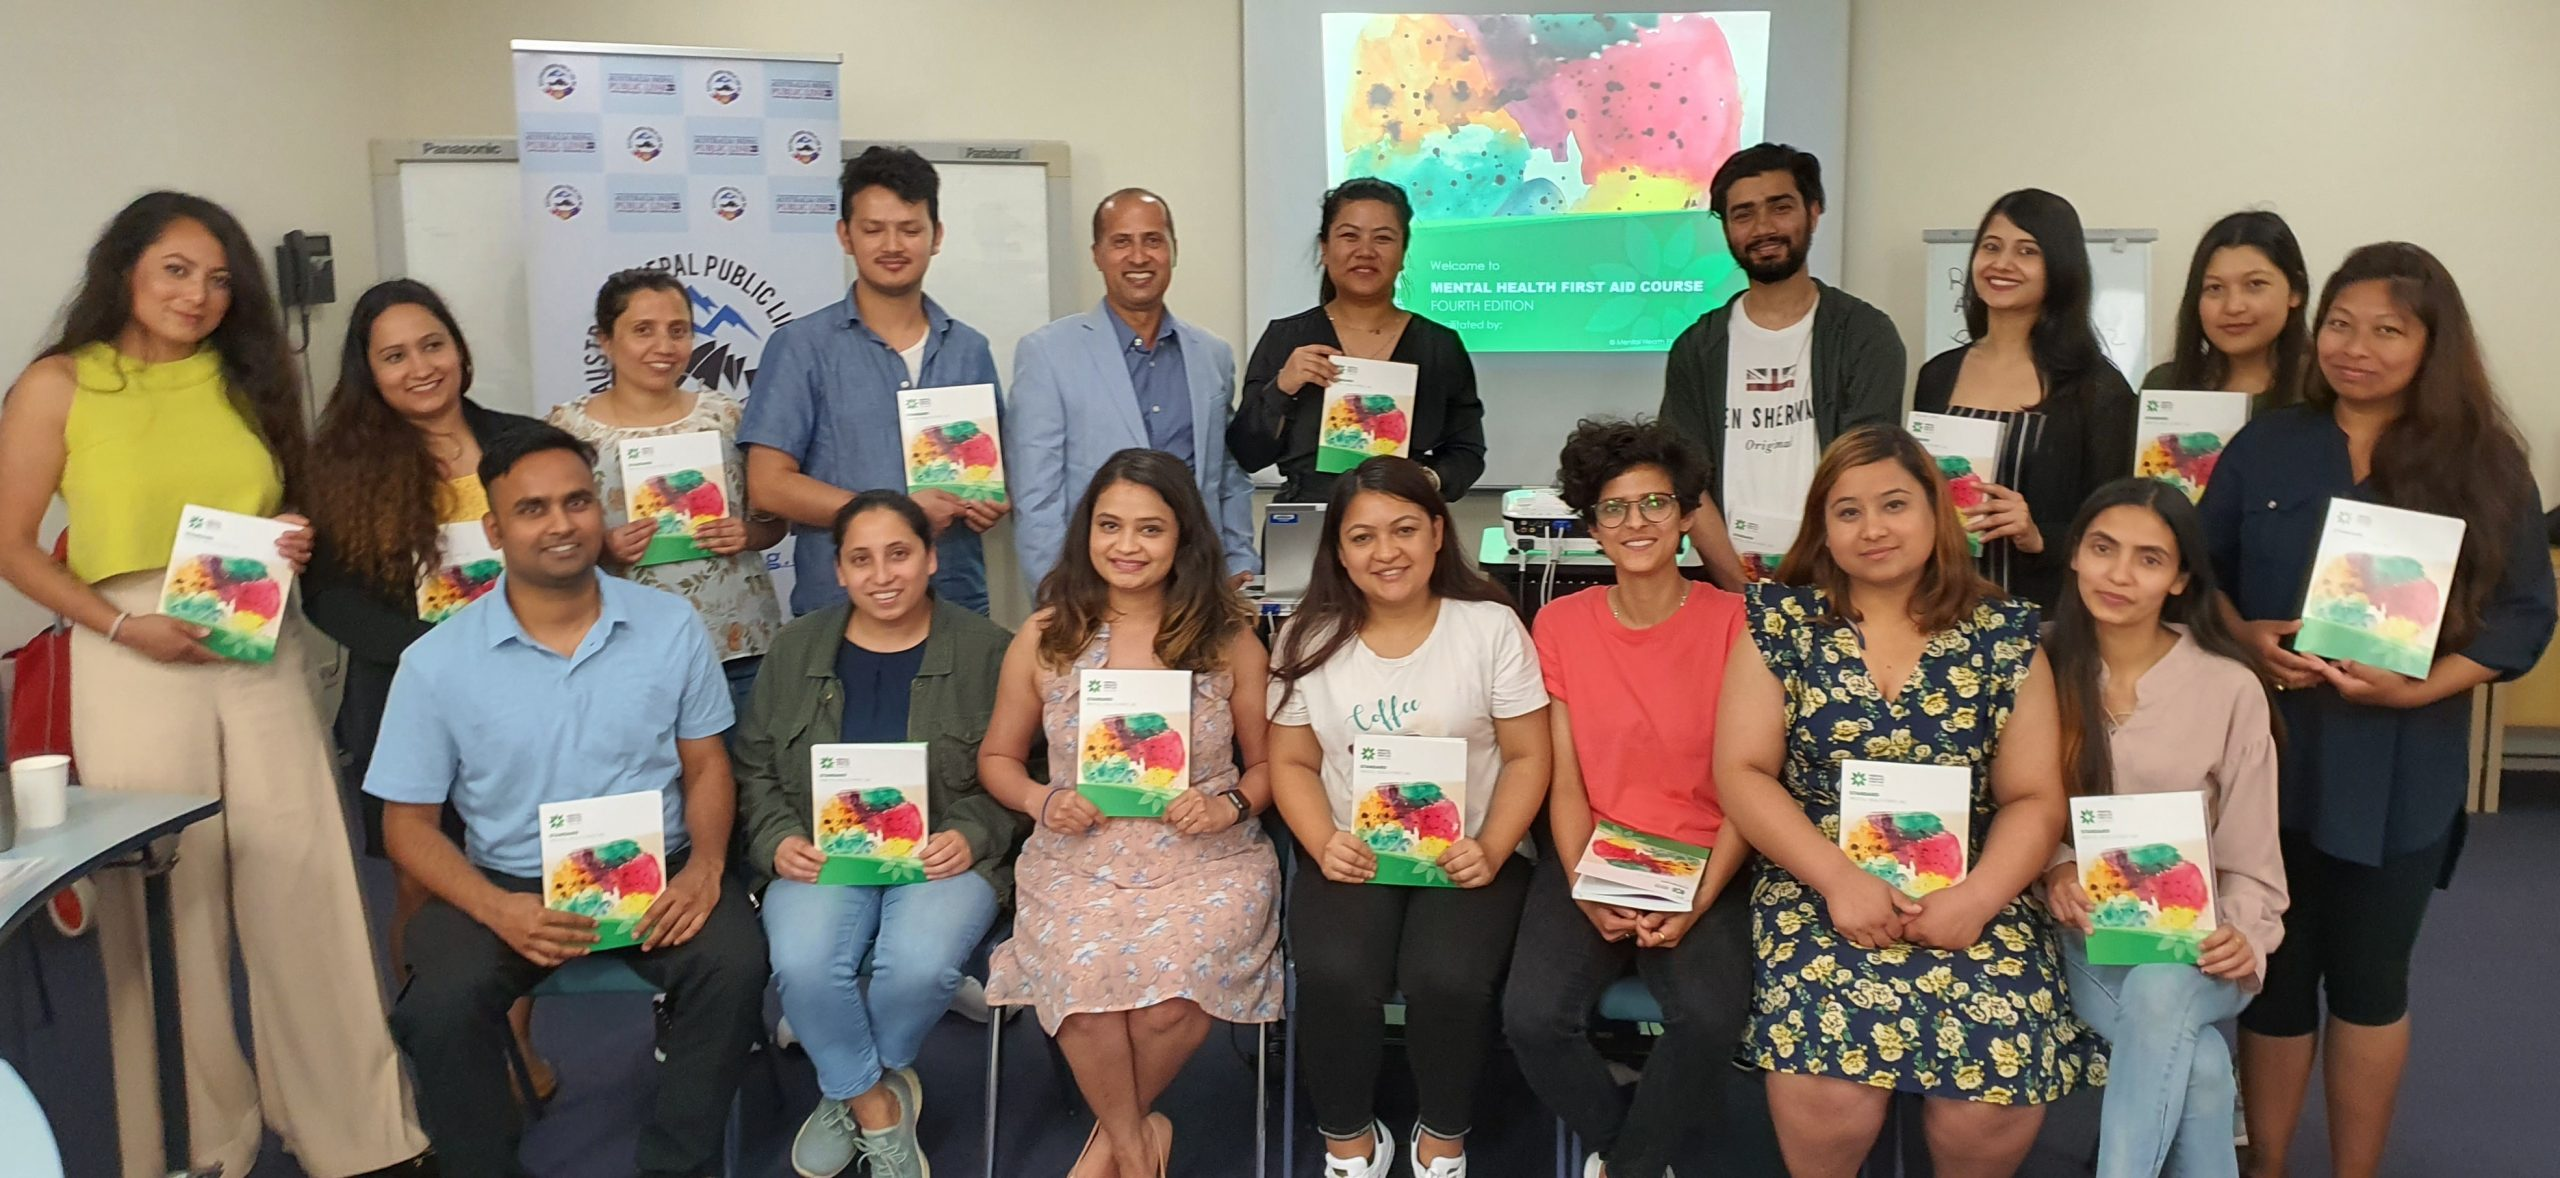 Mental Health First Training for Nepalese Social Work Students in Sydney 2020, Source: Nepalese Australian Photo Rishi Acharya